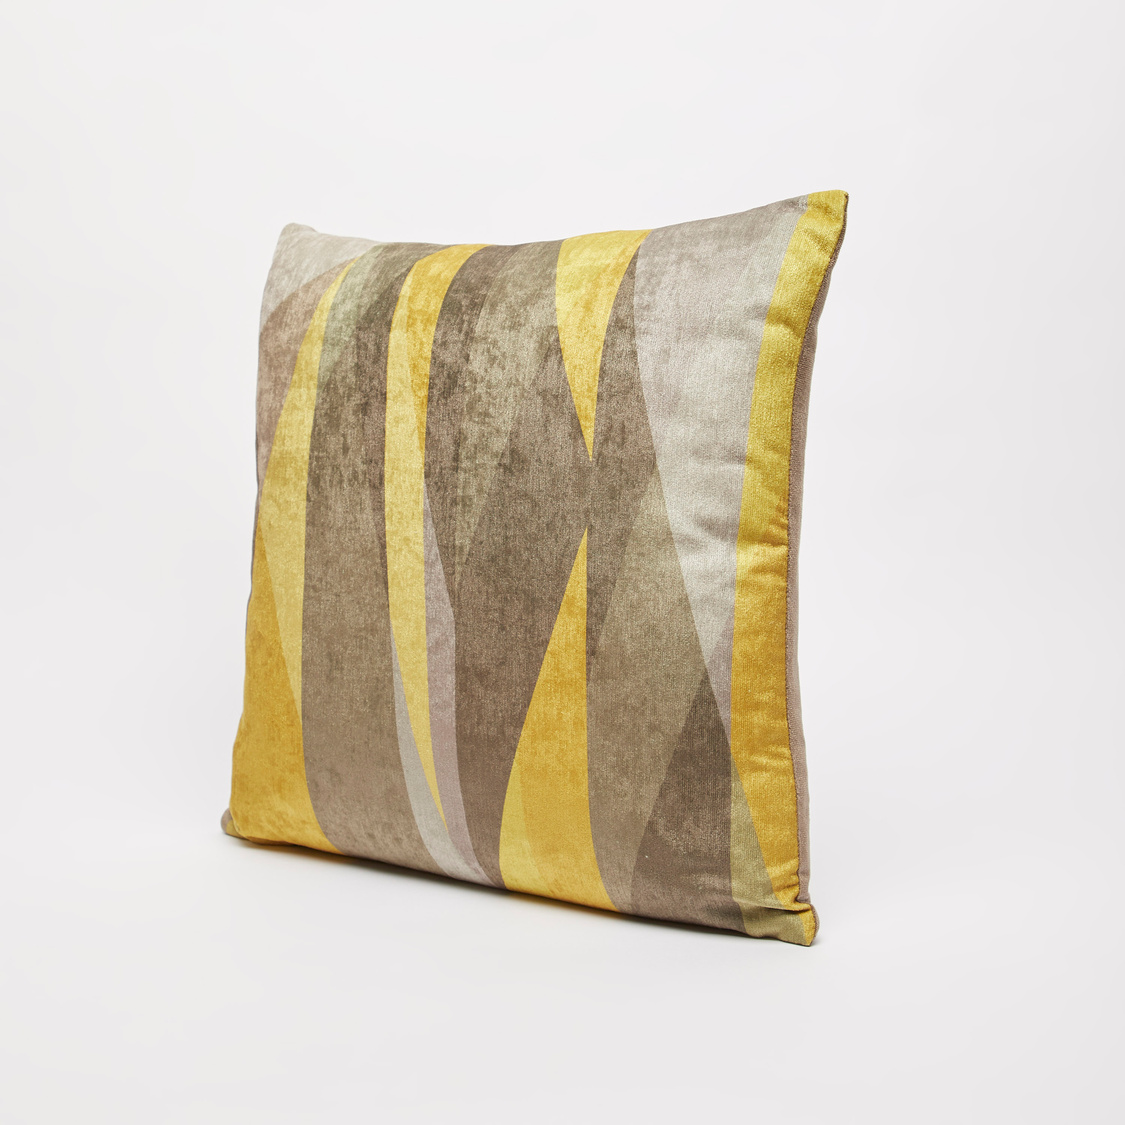 Printed Filled Cushion with Zip Closure - 45x45 cms